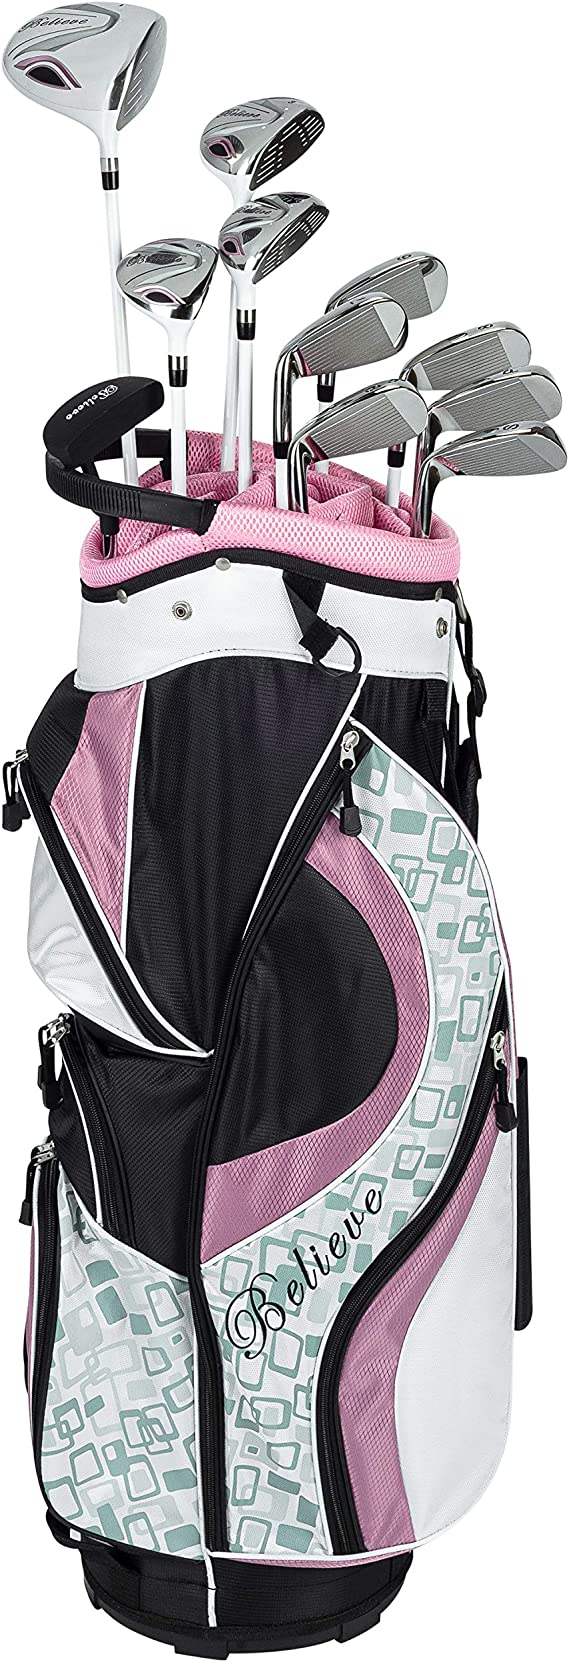 Founders Club Believe Women's Ladies Complete Golf Set (16 Piece) Standard or Petite Length Right Handed